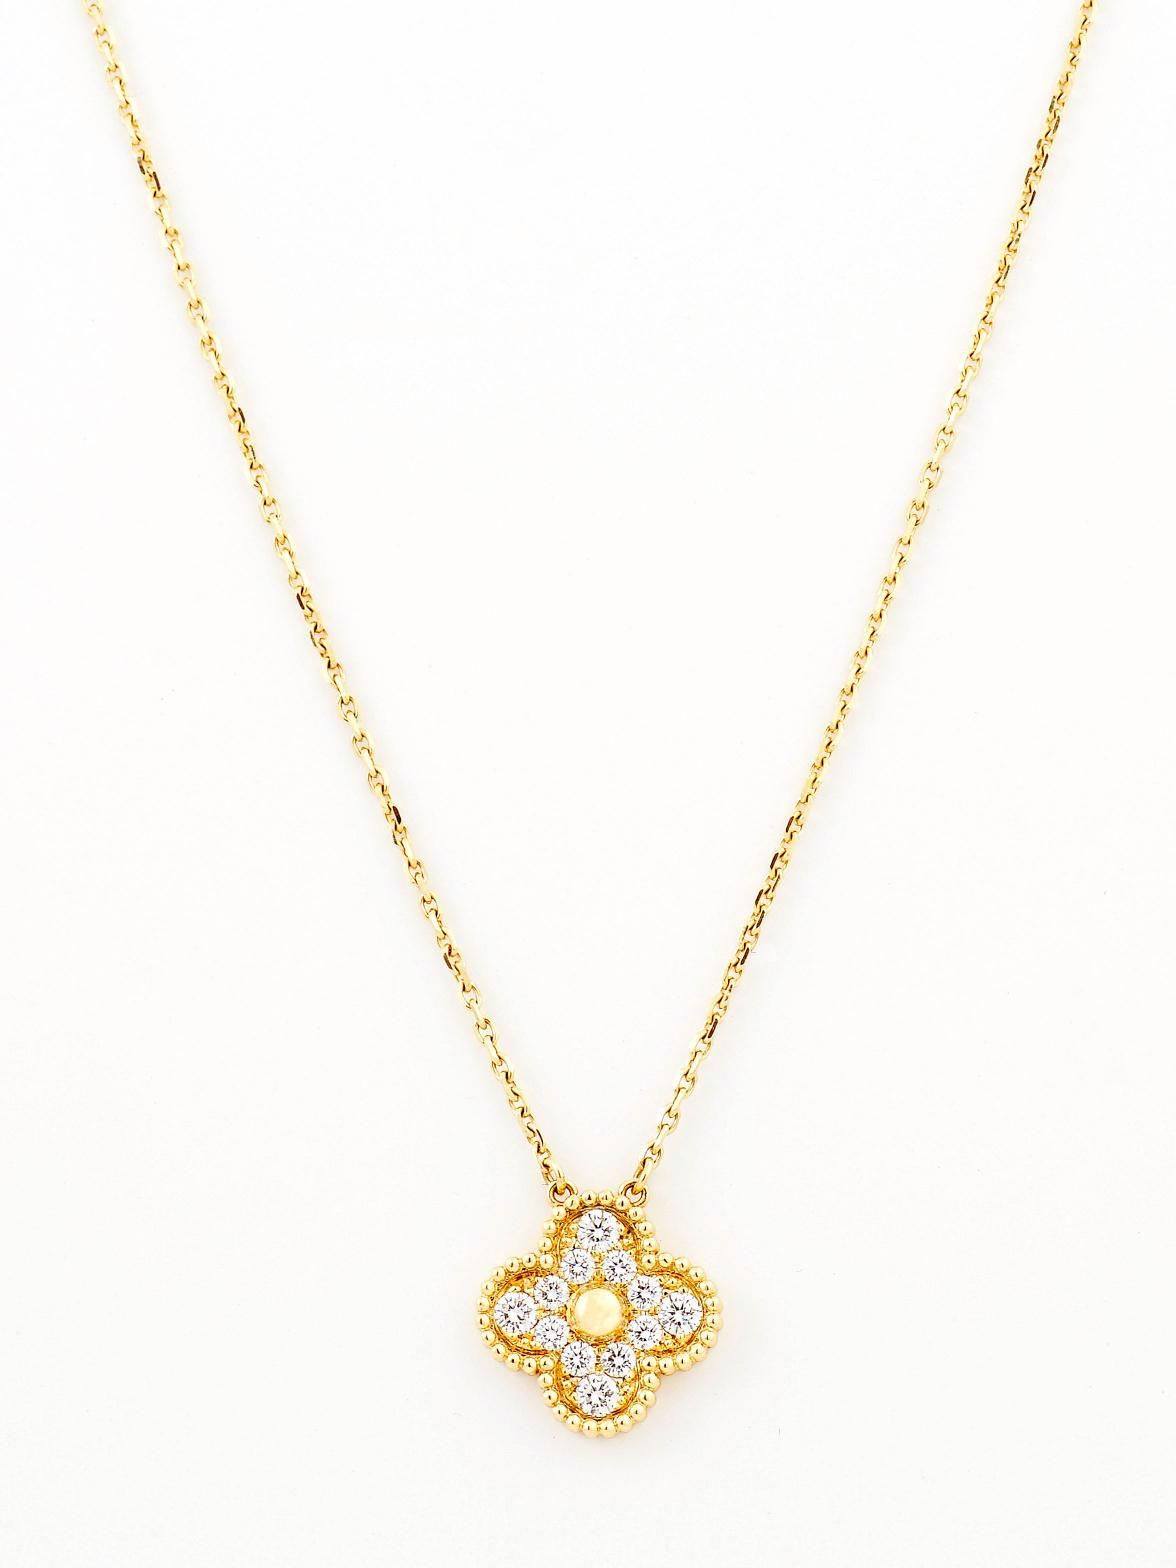 arpels van on betteridge pink chain p sweet cleef alhambra gold clover pendant